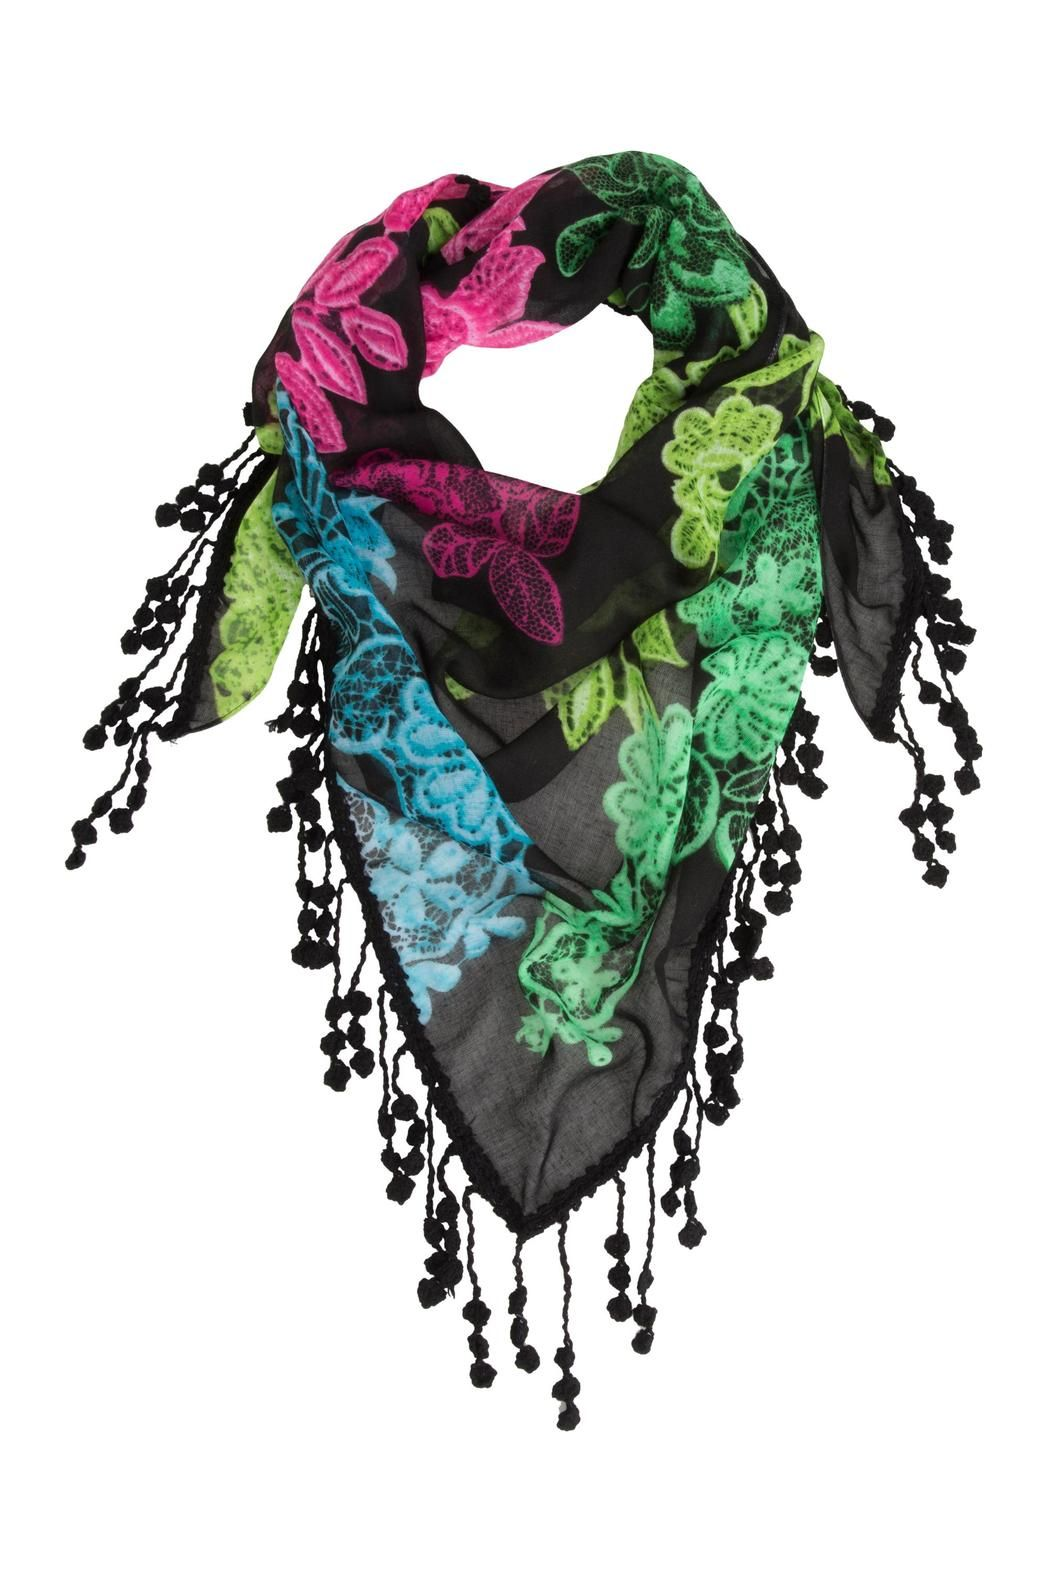 Wow Scarf Triangle Lincoln Avenu by Desigual line from Spain. Soft and lightweight scarf with fringing along the edge. Black with fuchsia green blue gorgeous pattern. Wear yours for day or night. It measures 80 x 165 cm.  Wow Triangle Scarf by DESIGUAL. Accessories - Scarves & Wraps Toronto Canada